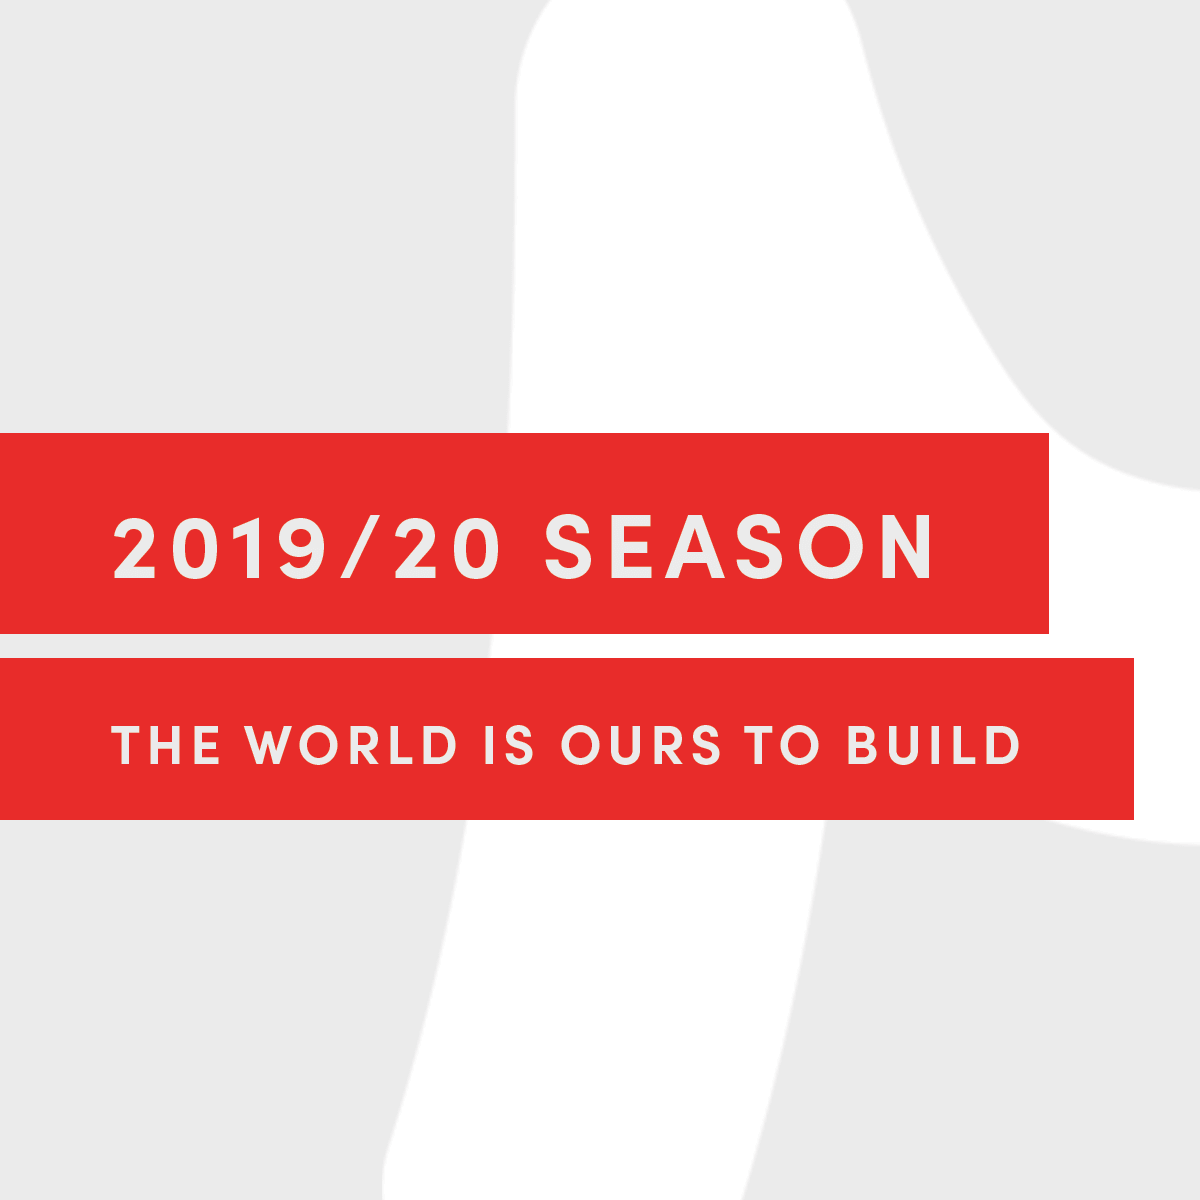 2019/20 SEASON: THE WORLD IS OURS TO BUILD - A season that inspires us to imagine the future and create the world on our own terms.